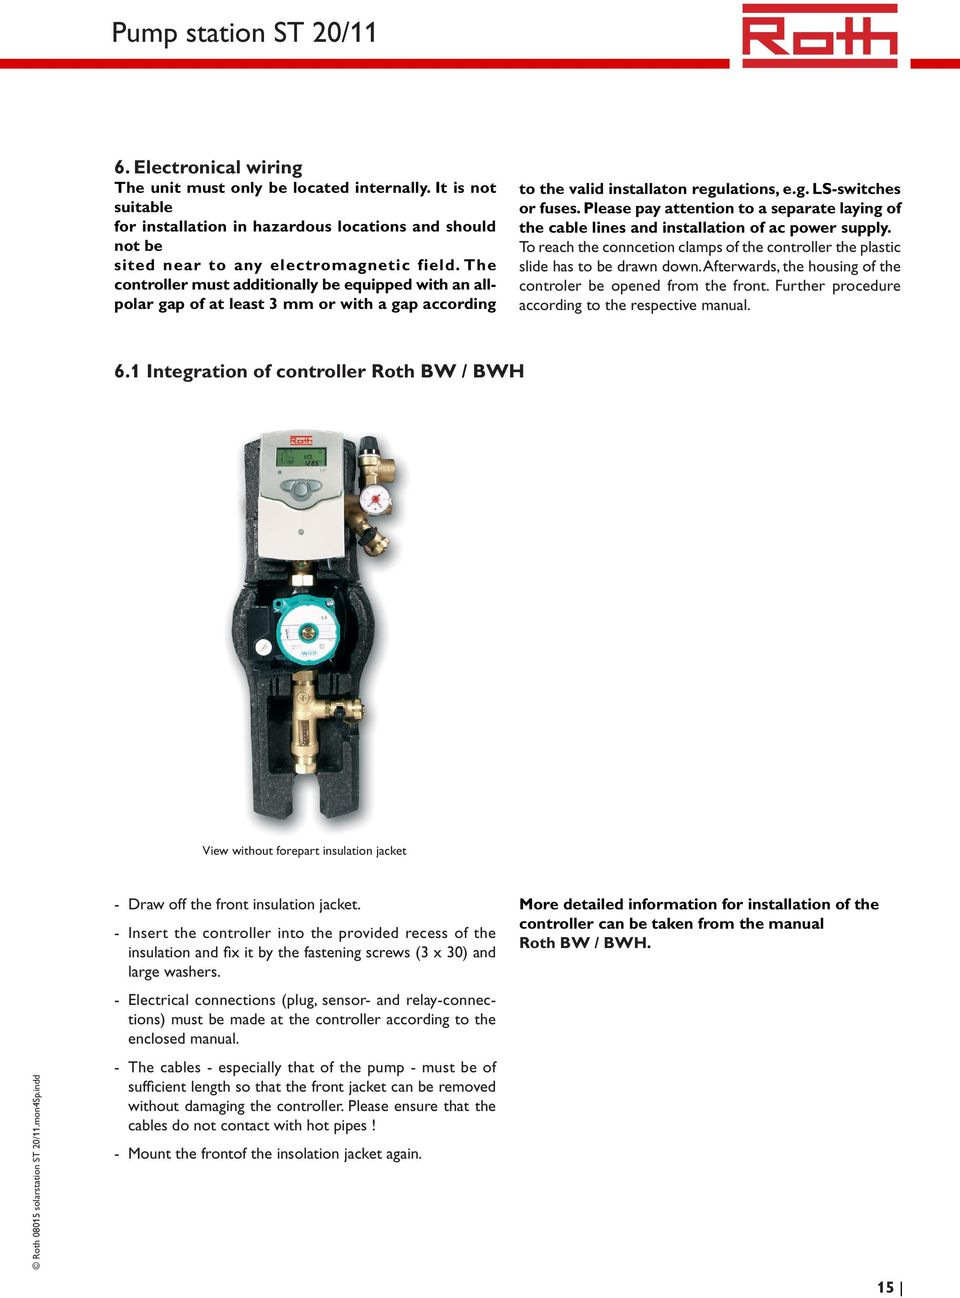 The controller must additionally be equipped with an allpolar gap of at least 3 mm or with a gap according to the valid installaton regulations, e.g. LS-switches or fuses.